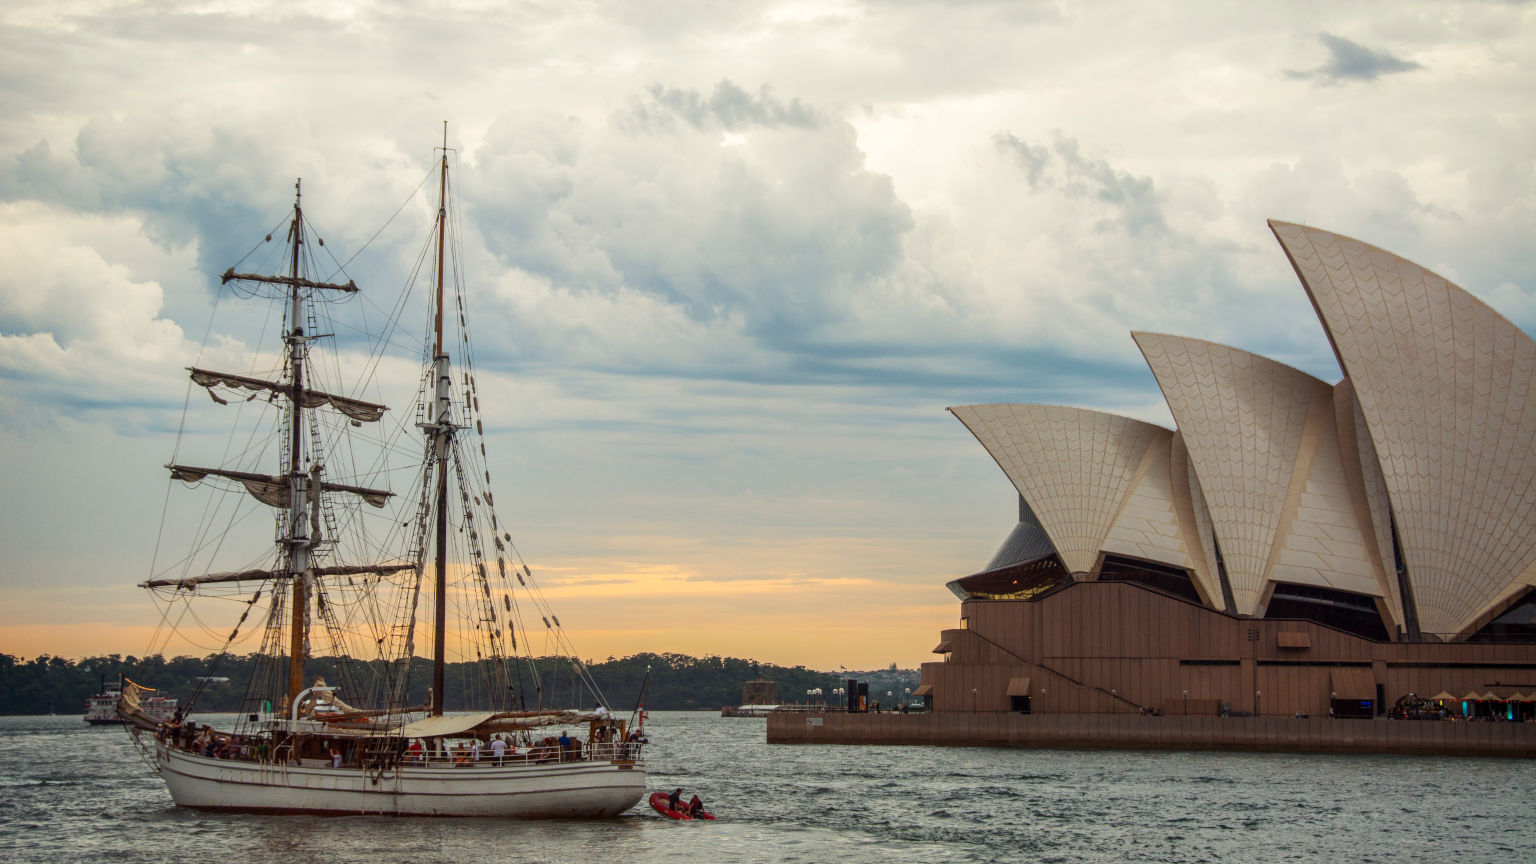 Going out into Sydney Harbour at dusk, the Sydney Opera House on the right.